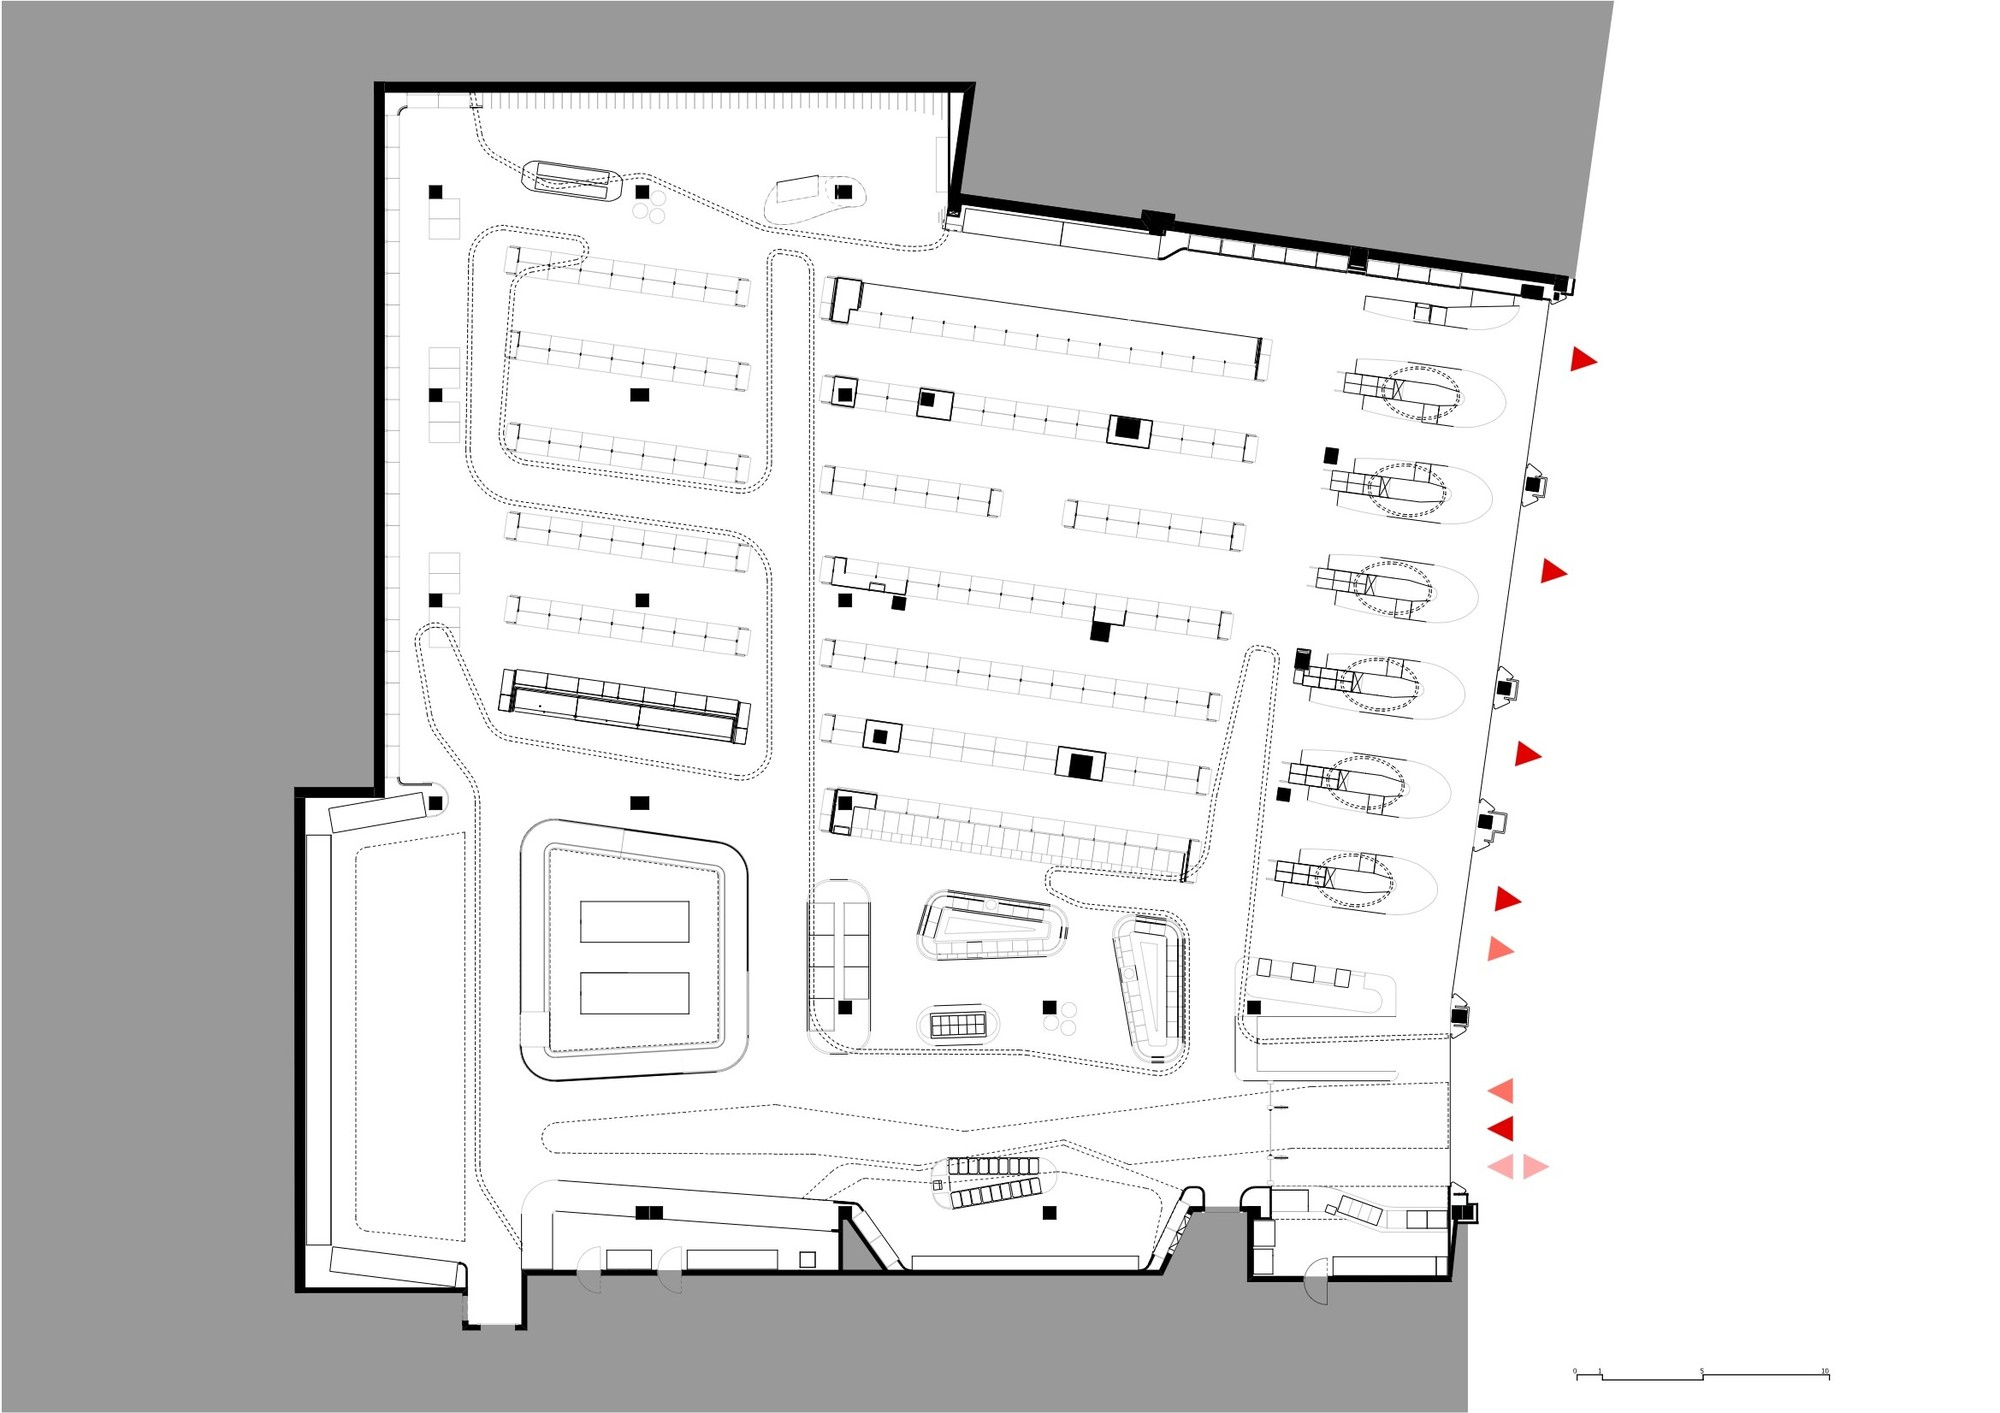 floor plan besides grocery store layout design on small grocery store download